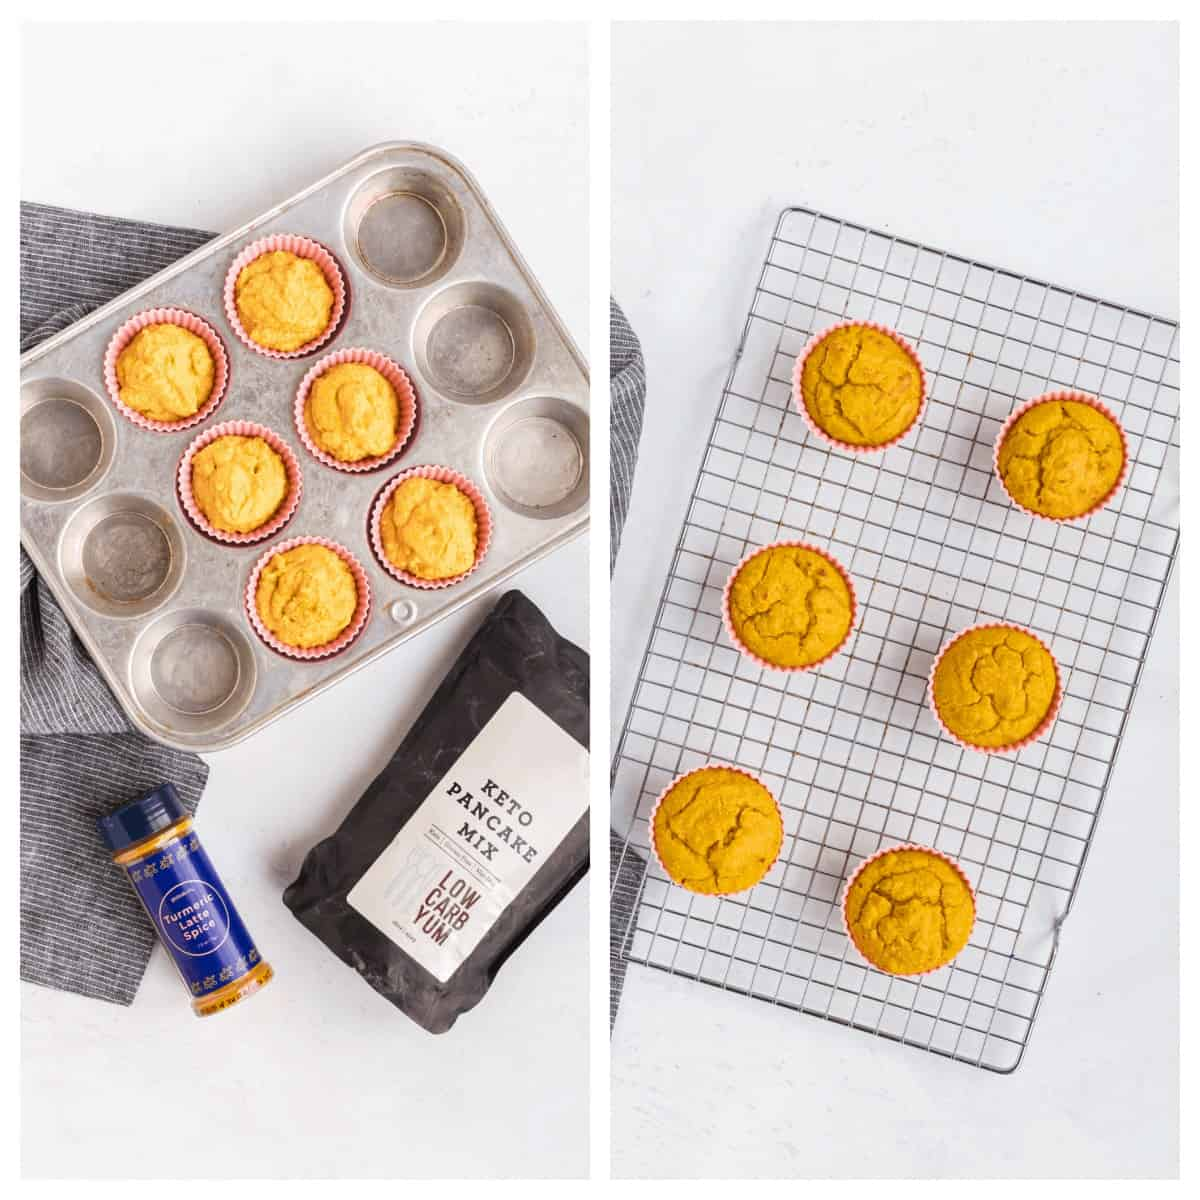 muffin batter and baked turmeric muffins in pan